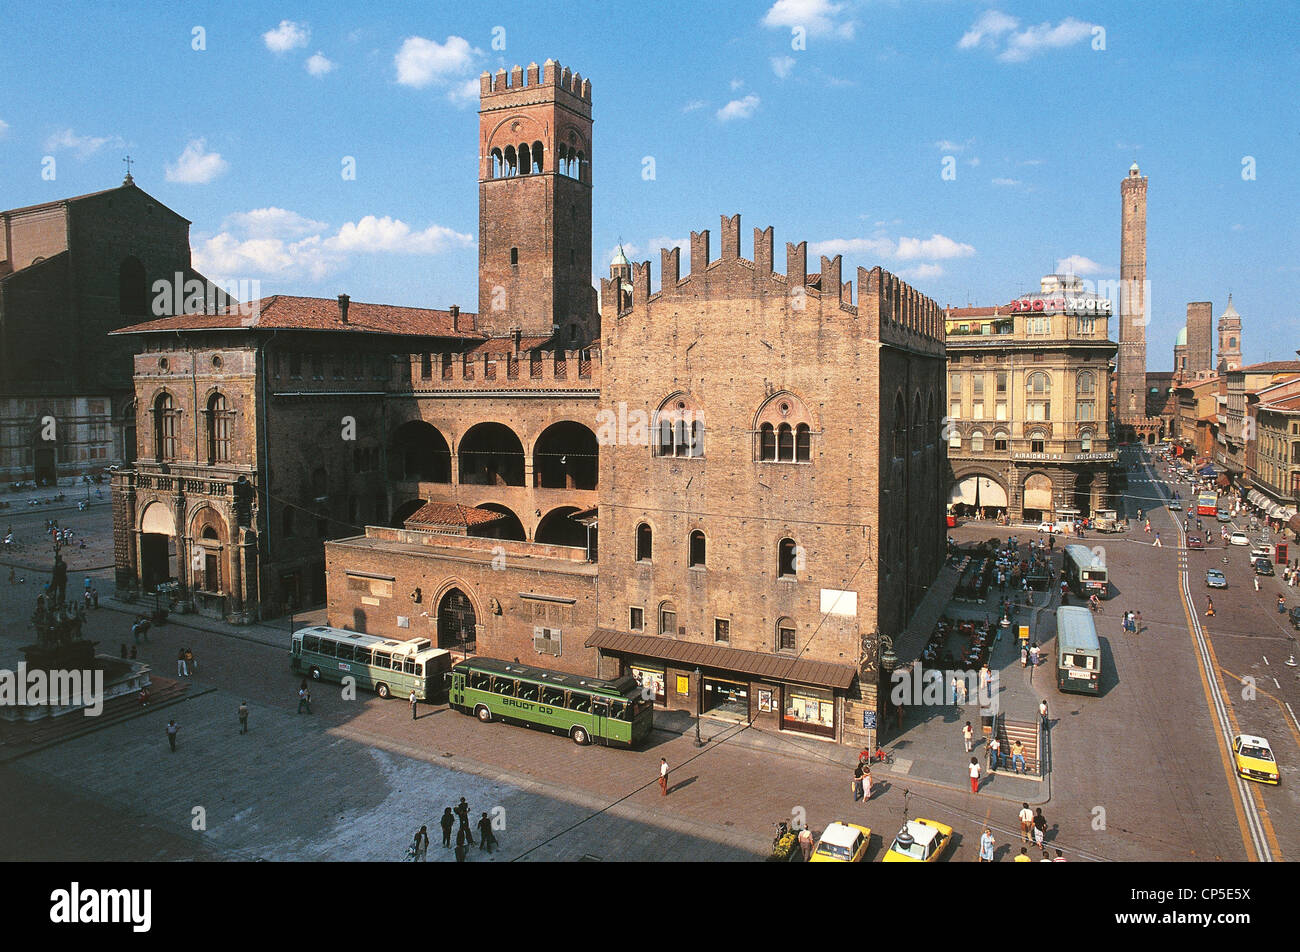 Emilia Romagna - Bologna. The Palazzo di Re Enzo and the Tower of donkeys. - Stock Image